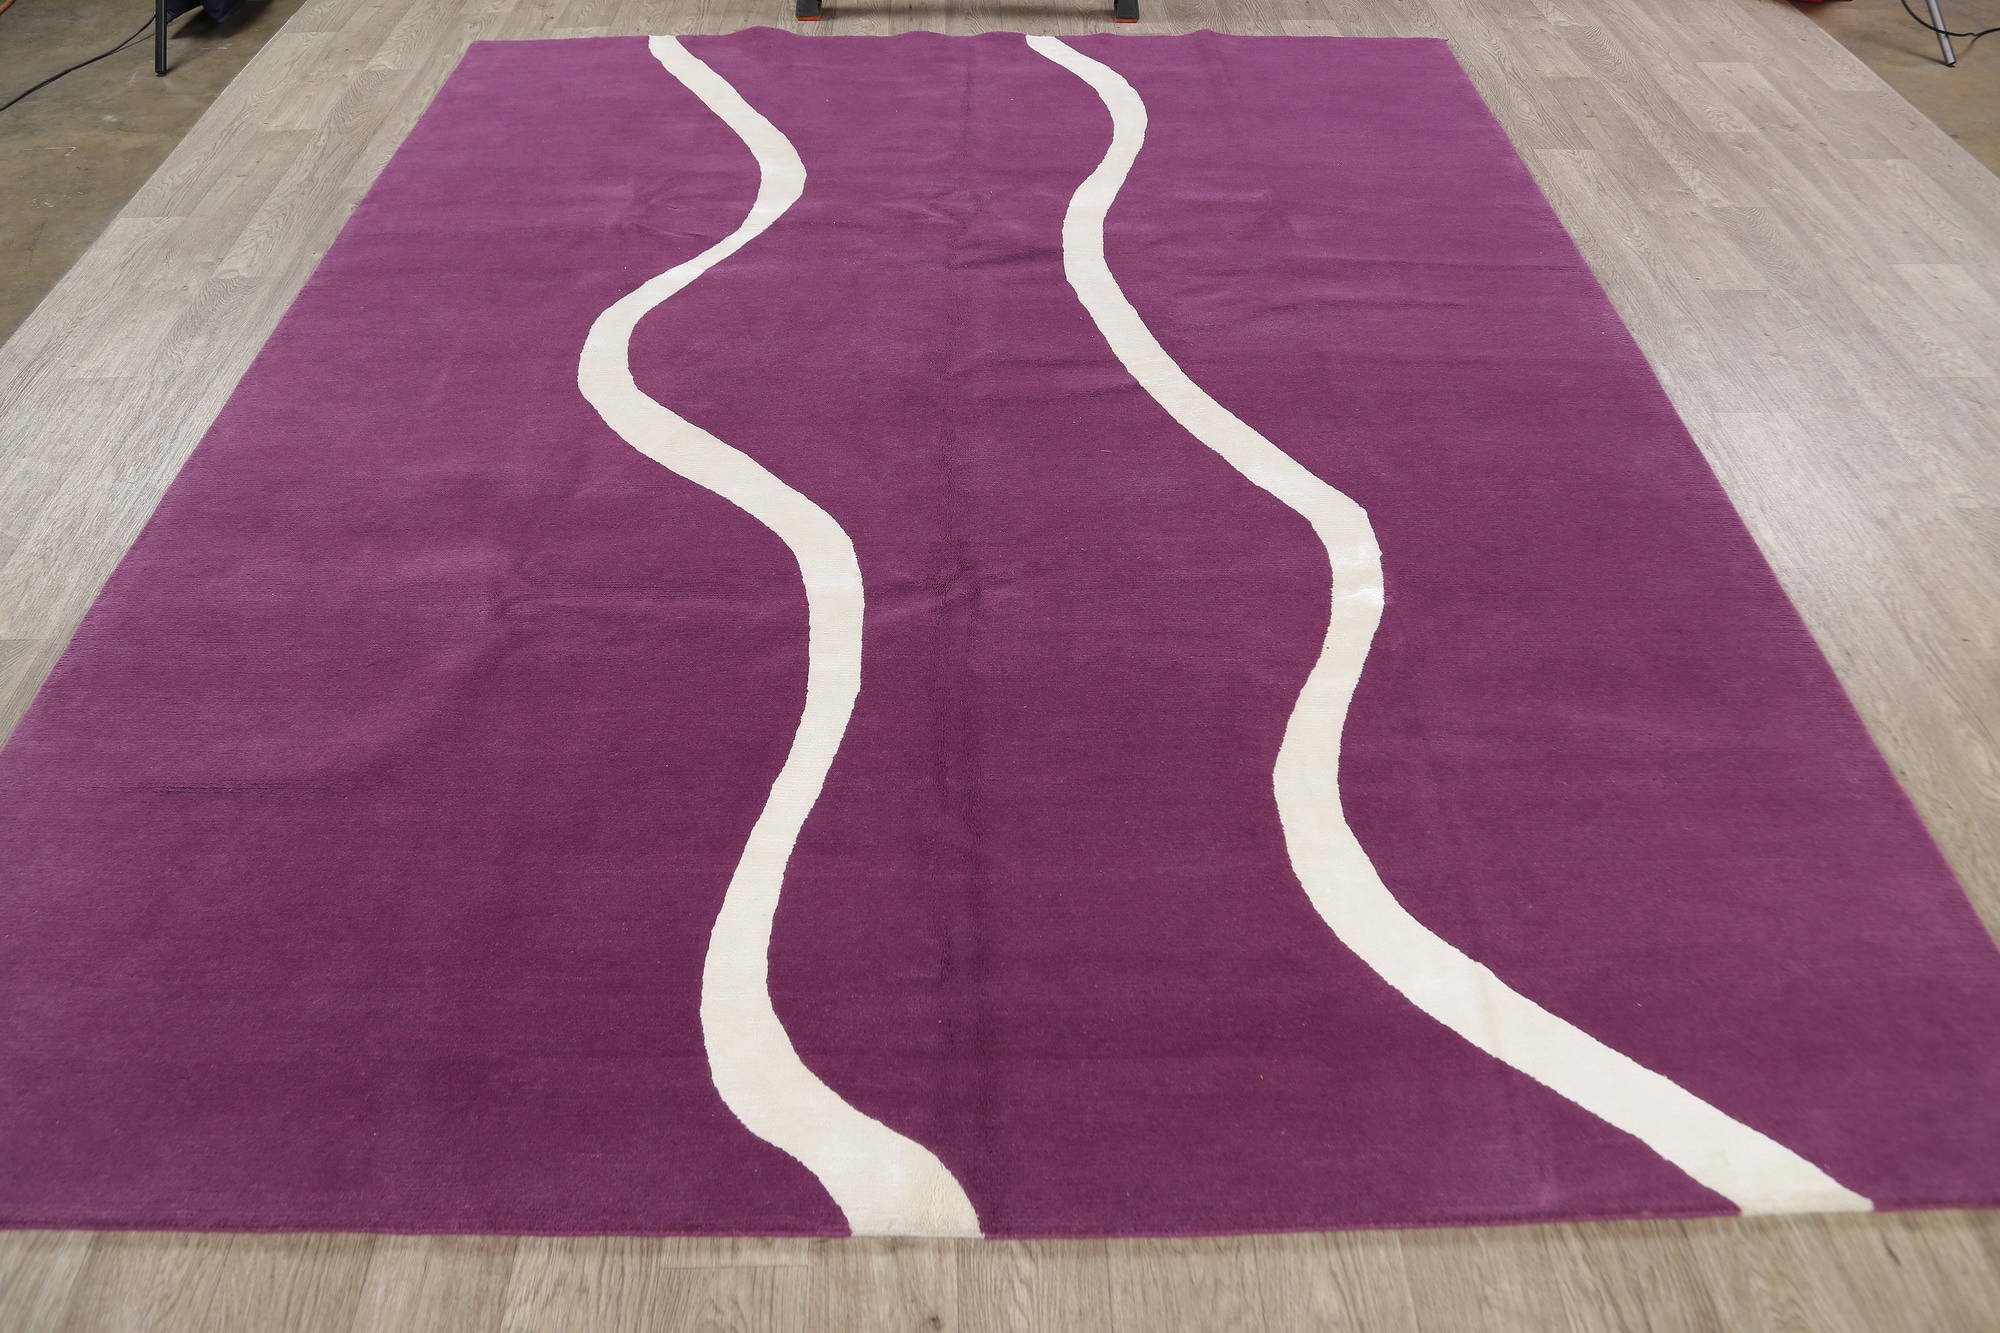 Wool/Silk Modern Purple Nepal Hand-Knotted Area Rug 8x10